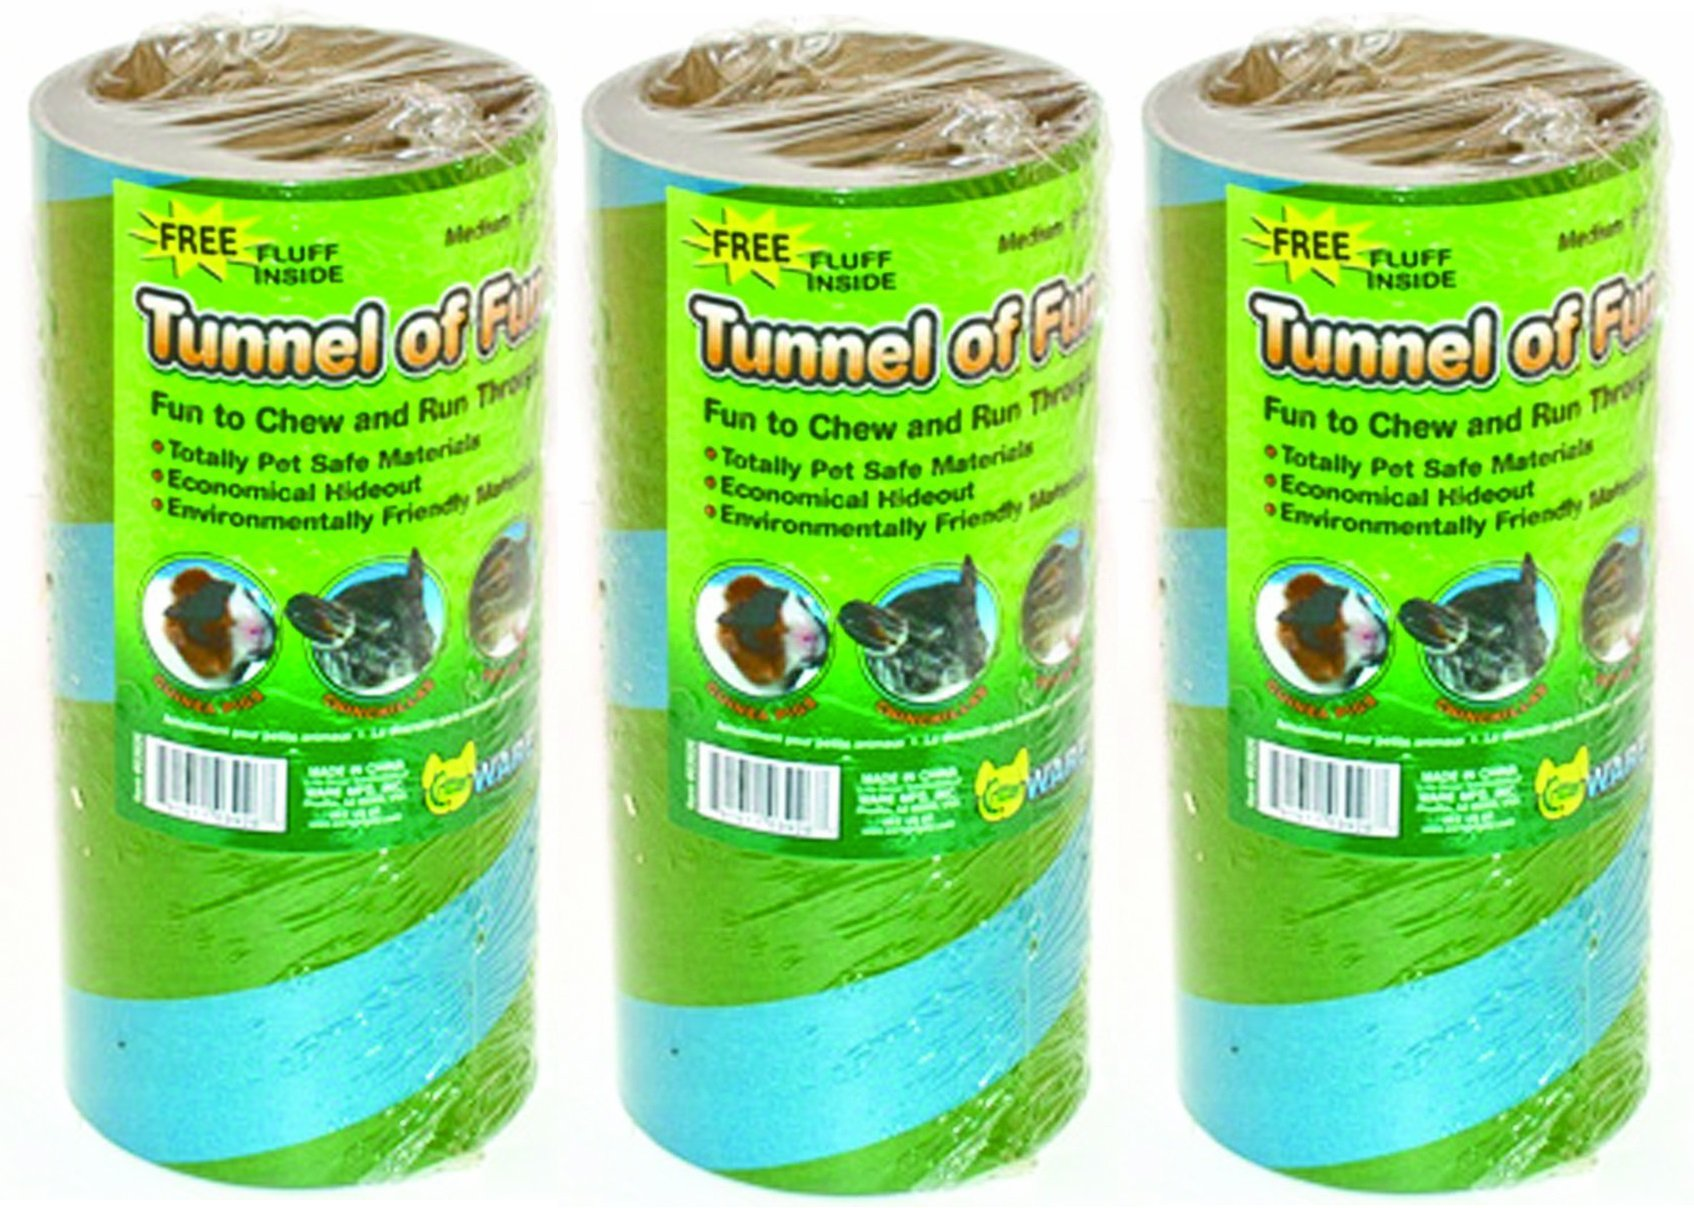 (3 Pack) Ware Manufacturing Tunnels of Fun Small Pet Hideaway, Medium